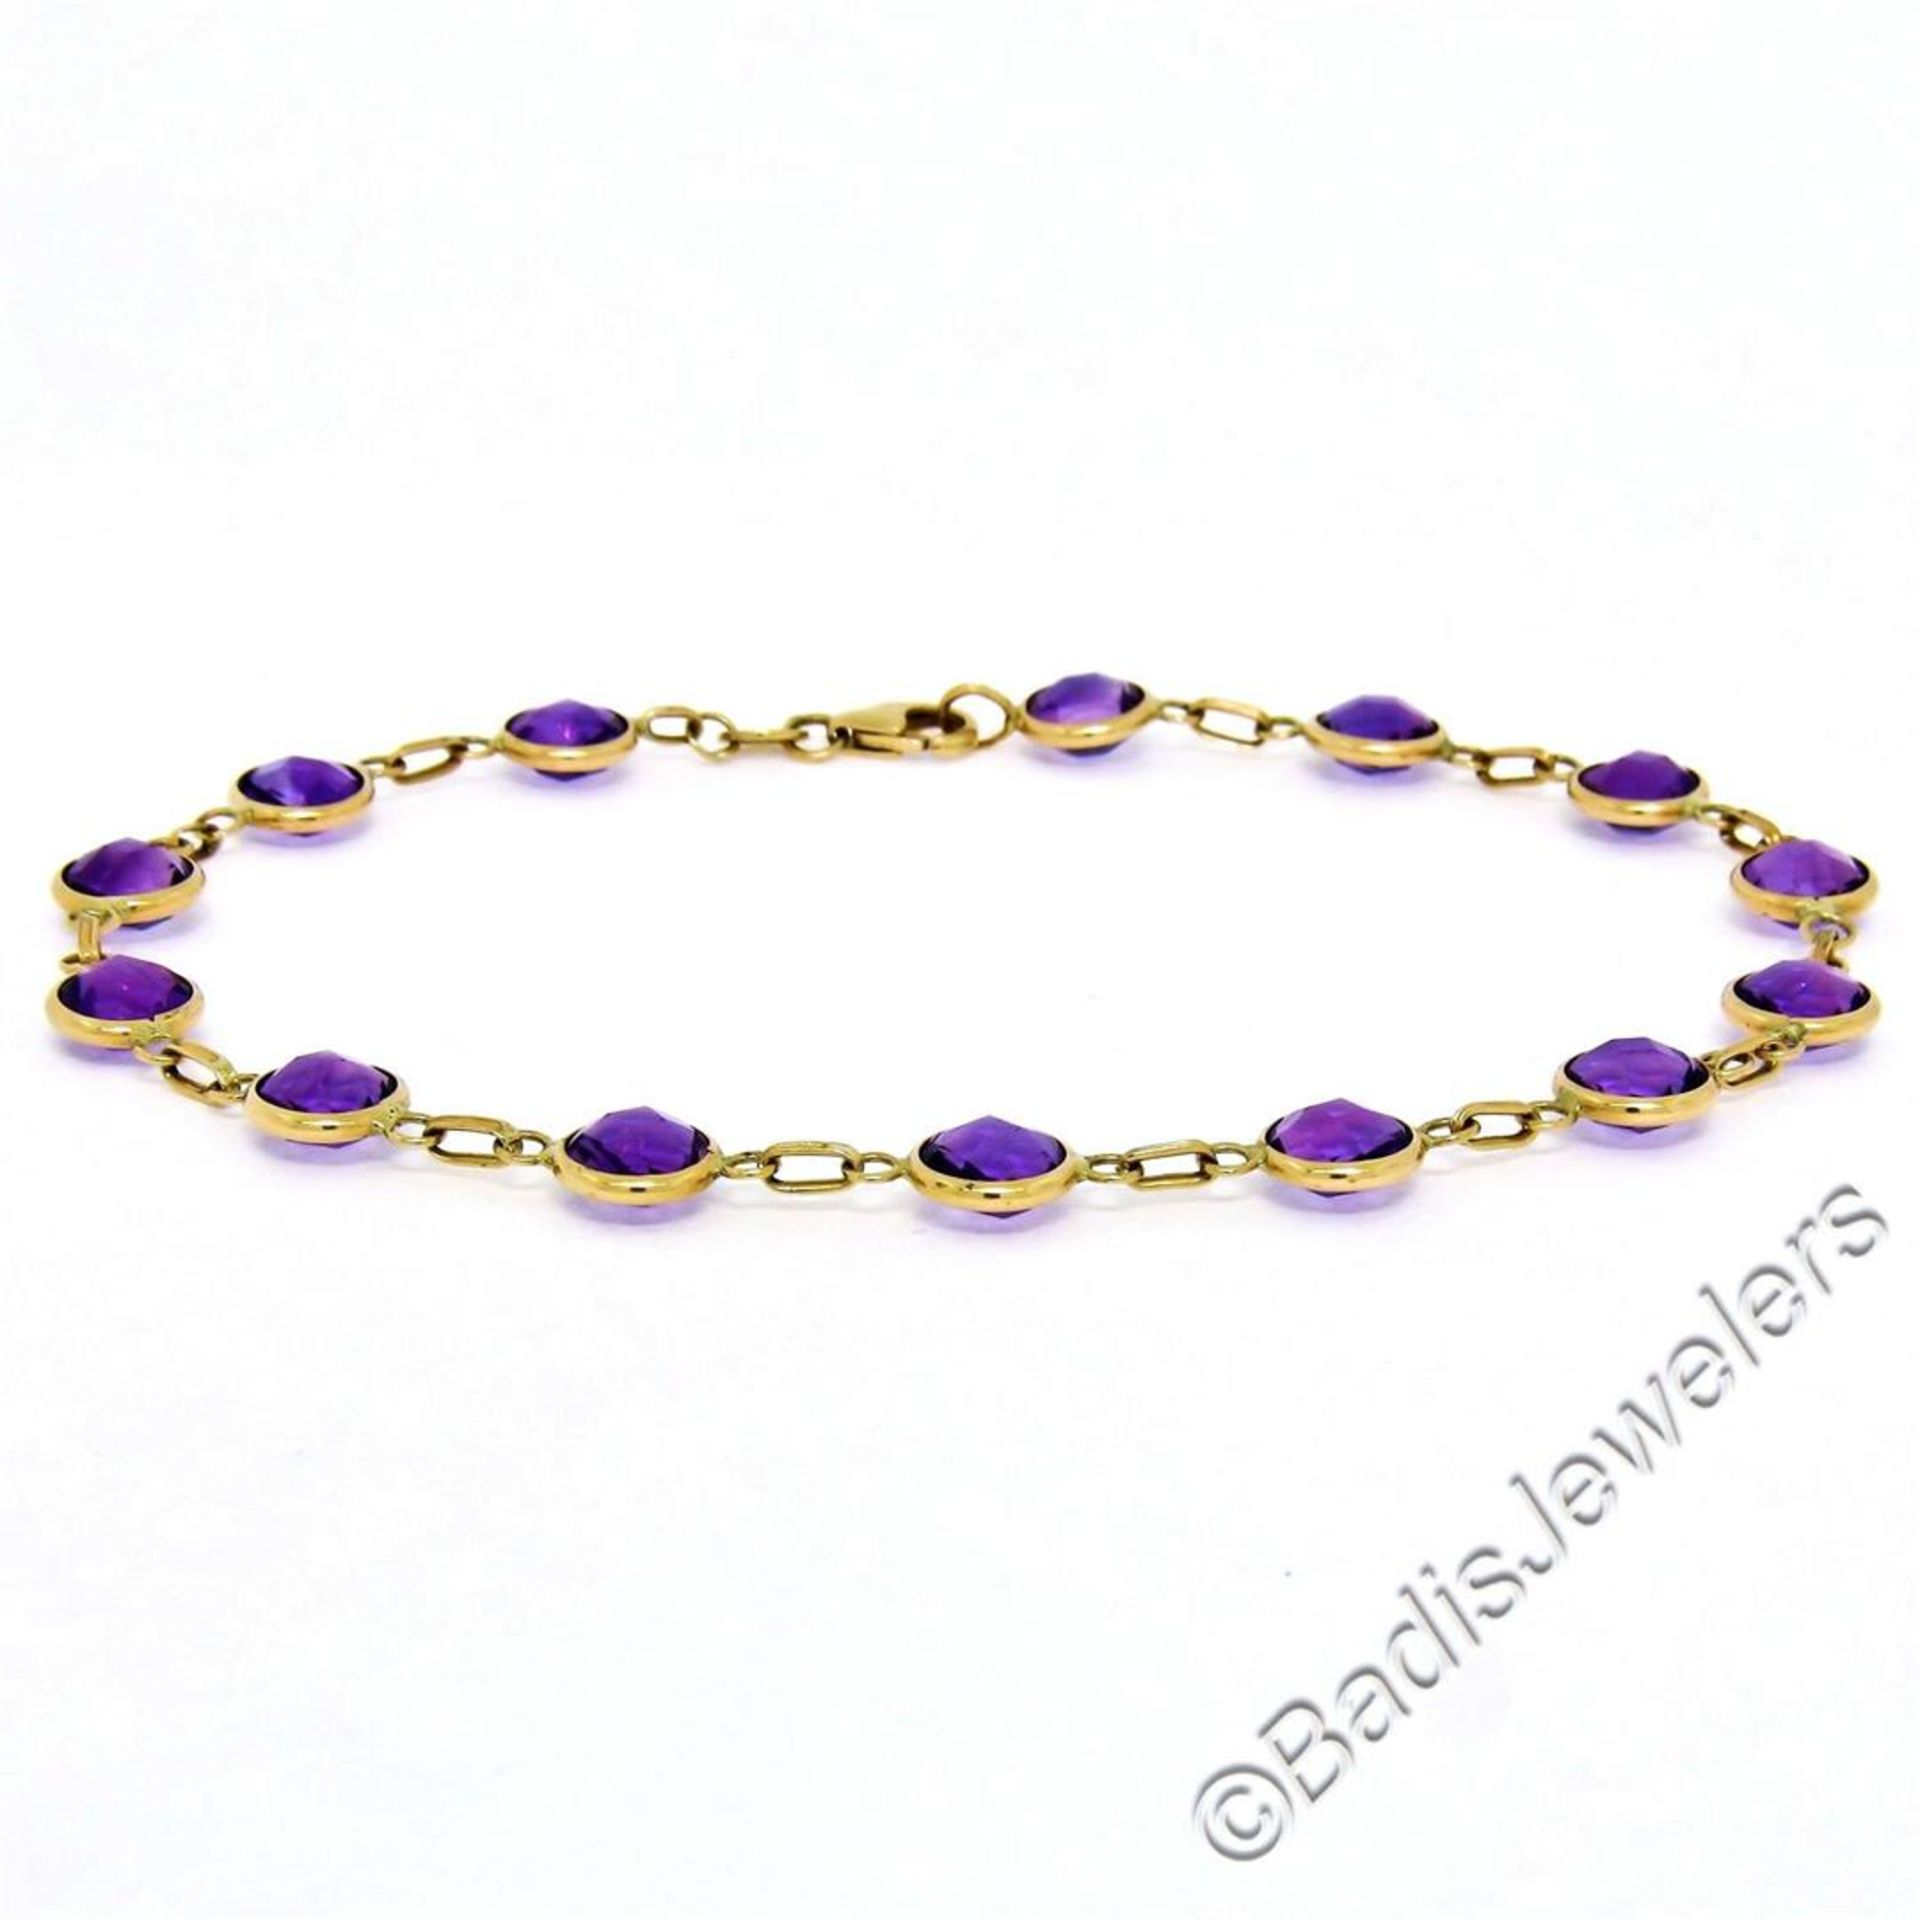 14kt Yellow Gold 10.50ctw Round Checkerboard Amethyst by the Yard Chain Bracelet - Image 2 of 5